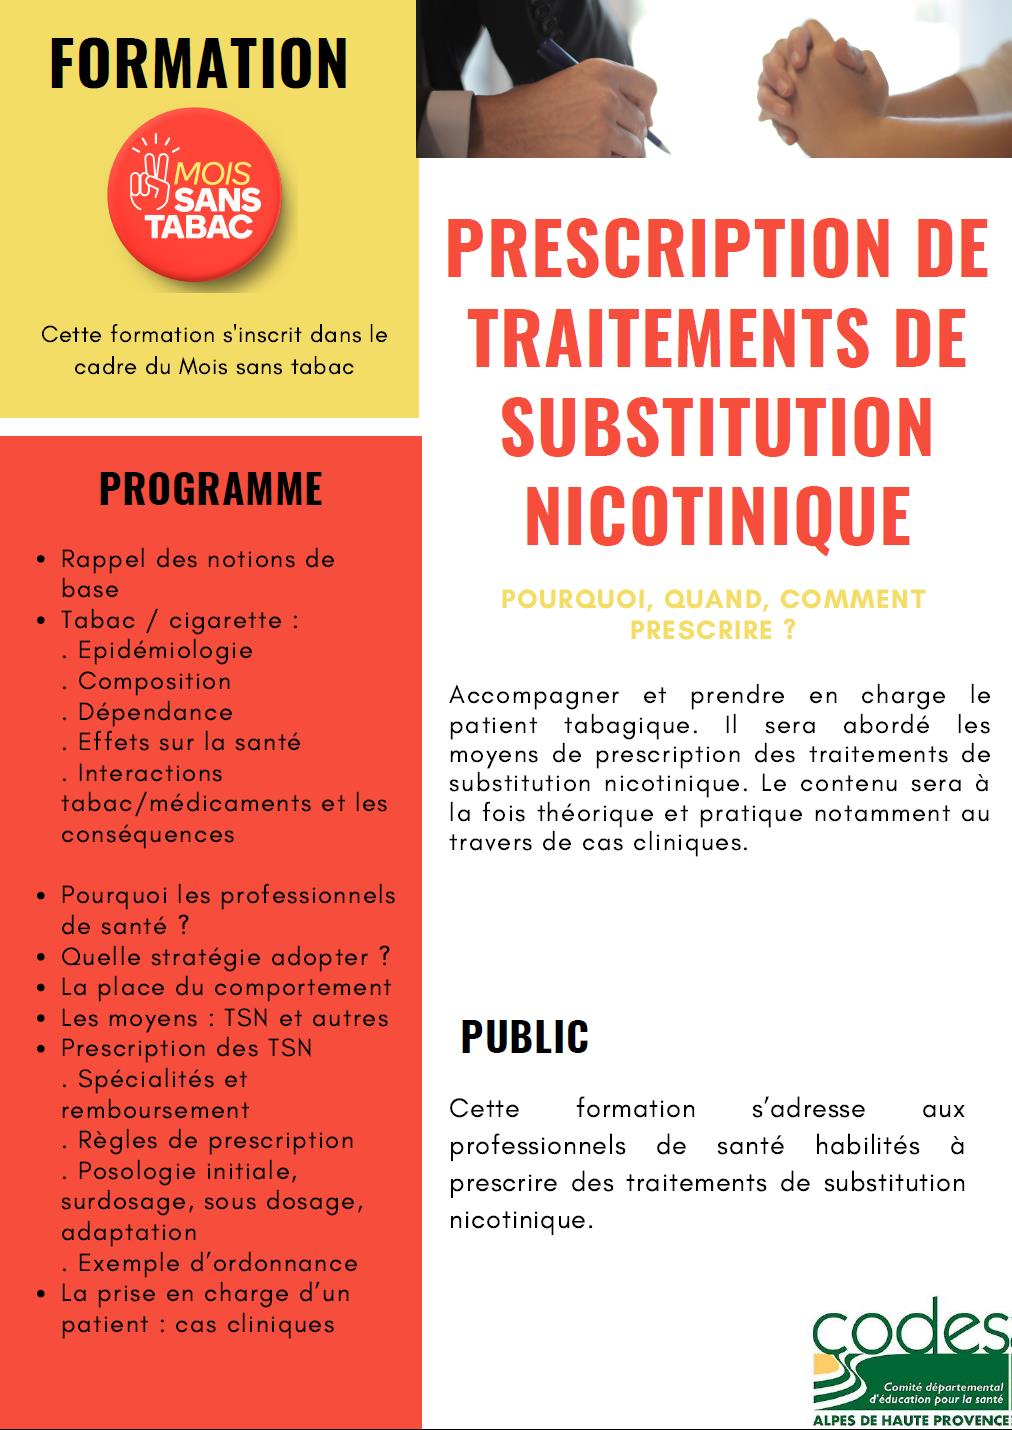 image 1 Formation prescription de traitements de substitution nicotinique